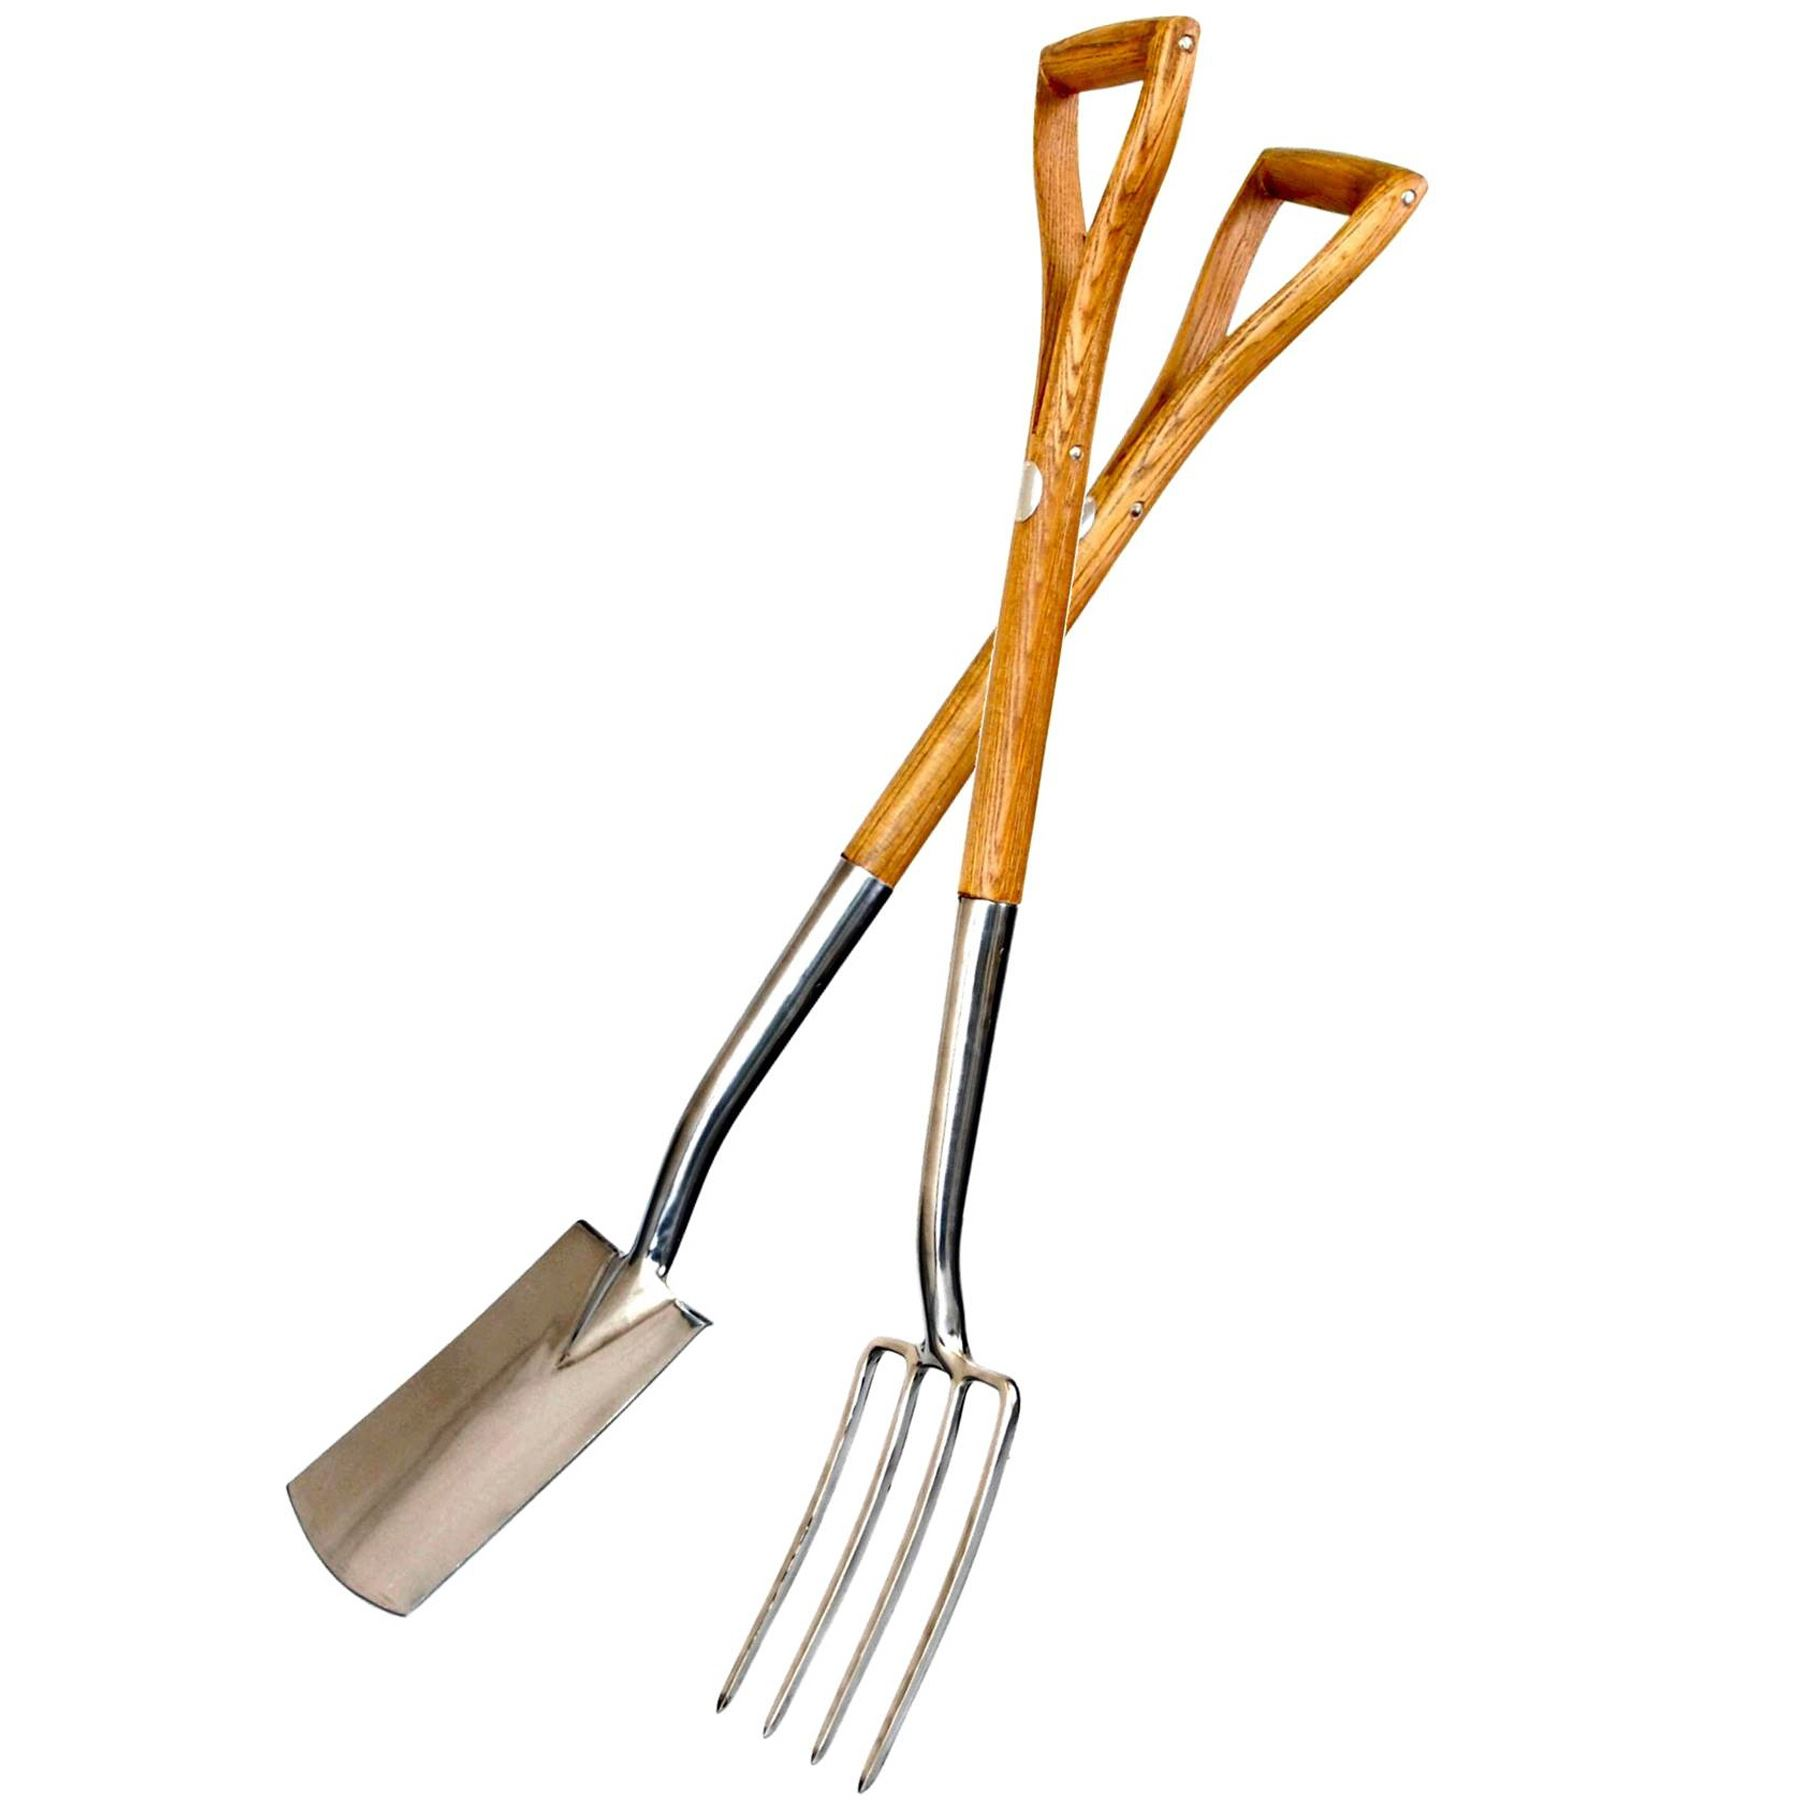 Stainless steel garden border fork spade set ash wood for Garden fork and spade set